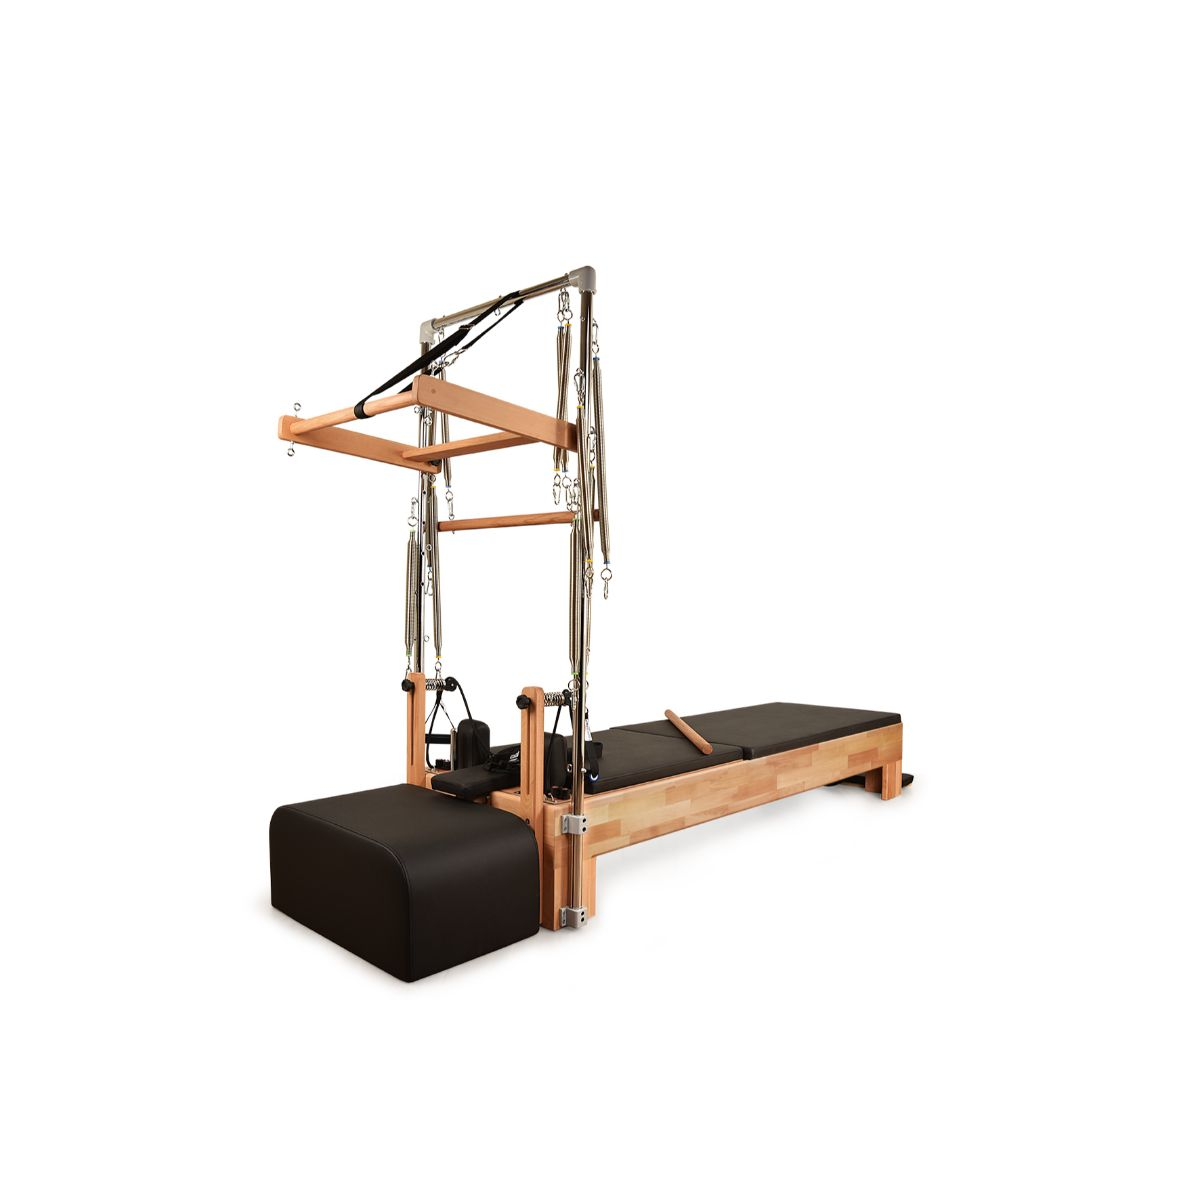 Private Pilates Premium Wood Reformer with Tower - Pilates Reformers Plus